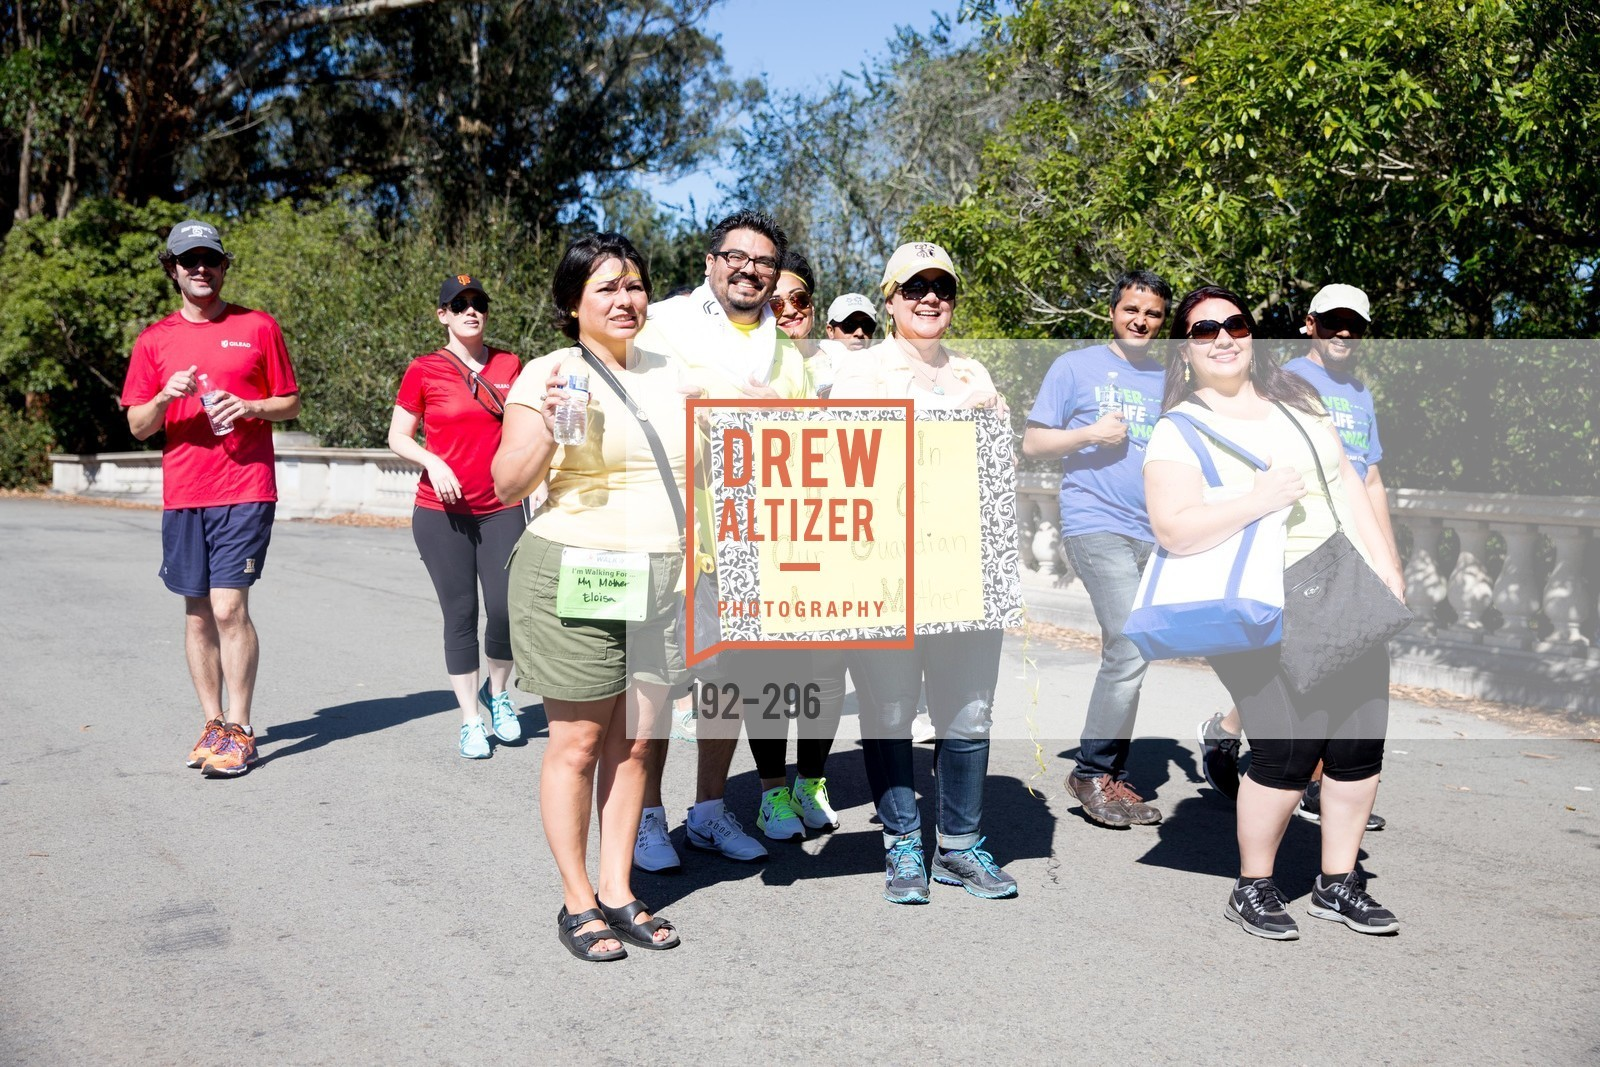 Extras, American Liver Foundation - San Francisco Liver Life Walk 2015, September 20th, 2015, Photo,Drew Altizer, Drew Altizer Photography, full-service agency, private events, San Francisco photographer, photographer california